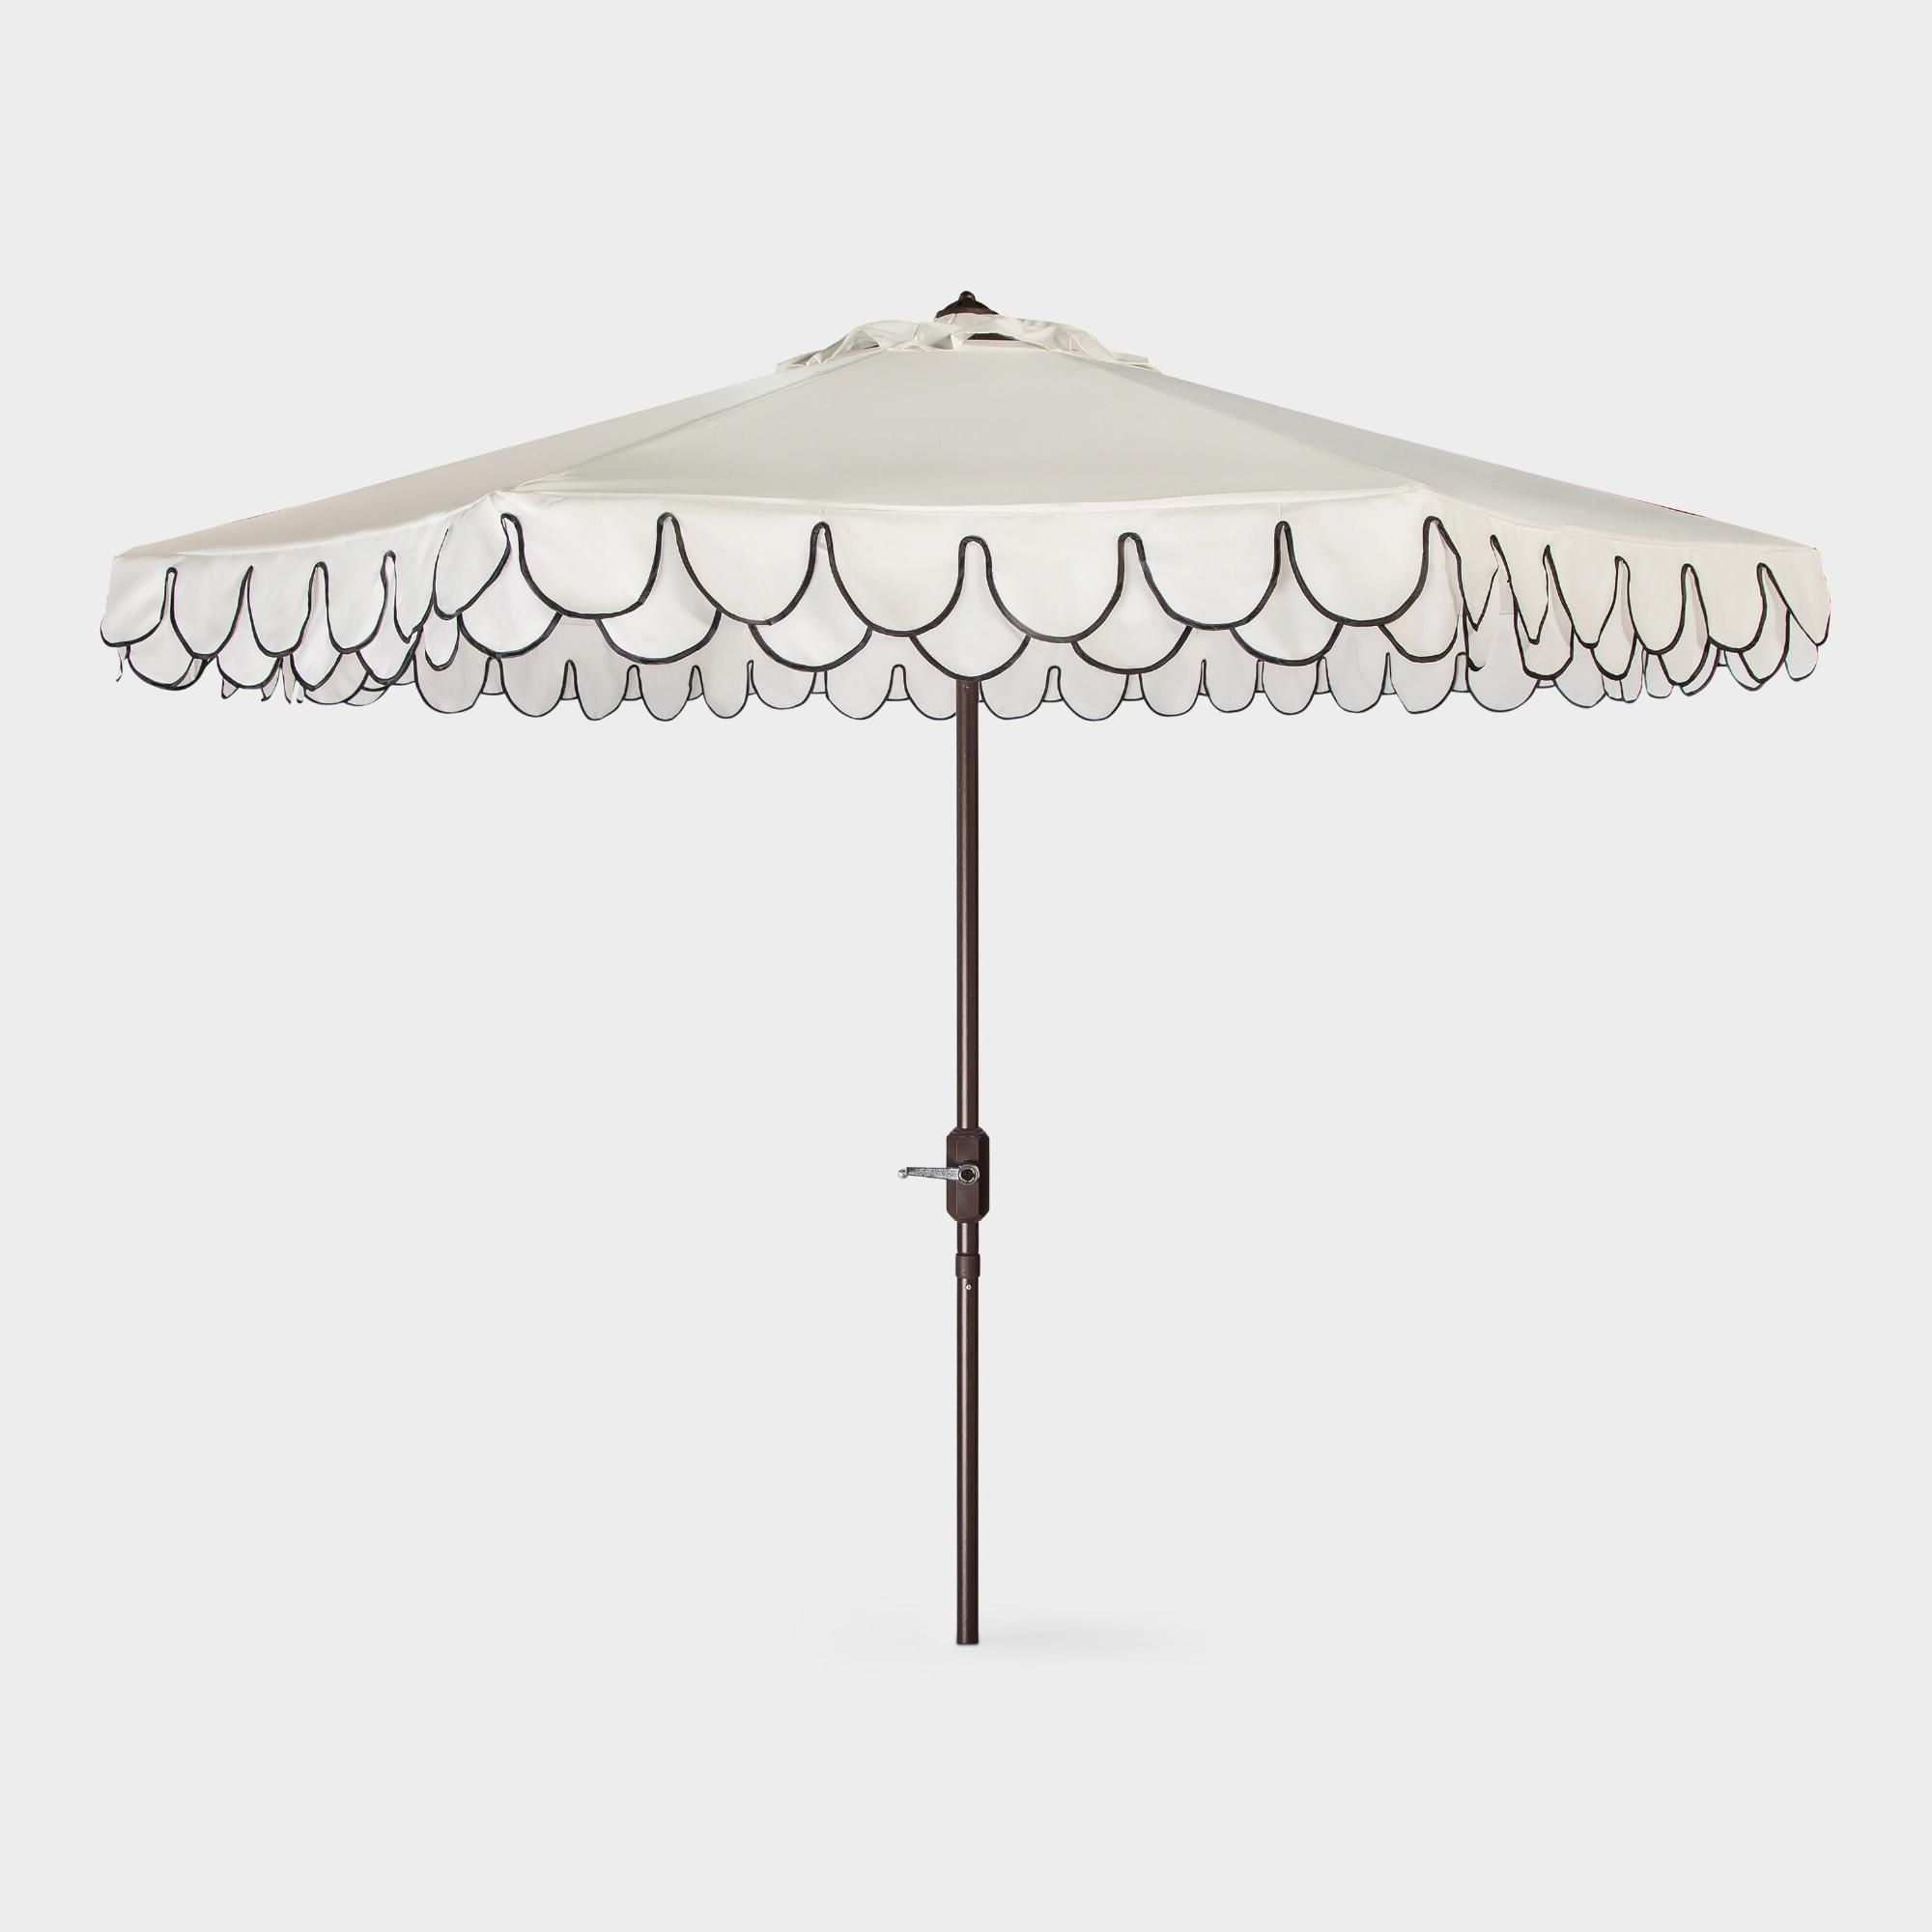 Best And Newest White And Black Double Scallop 9 Ft Tilting Outdoor Patio Umbrella For Lambeth Market Umbrellas (View 5 of 20)